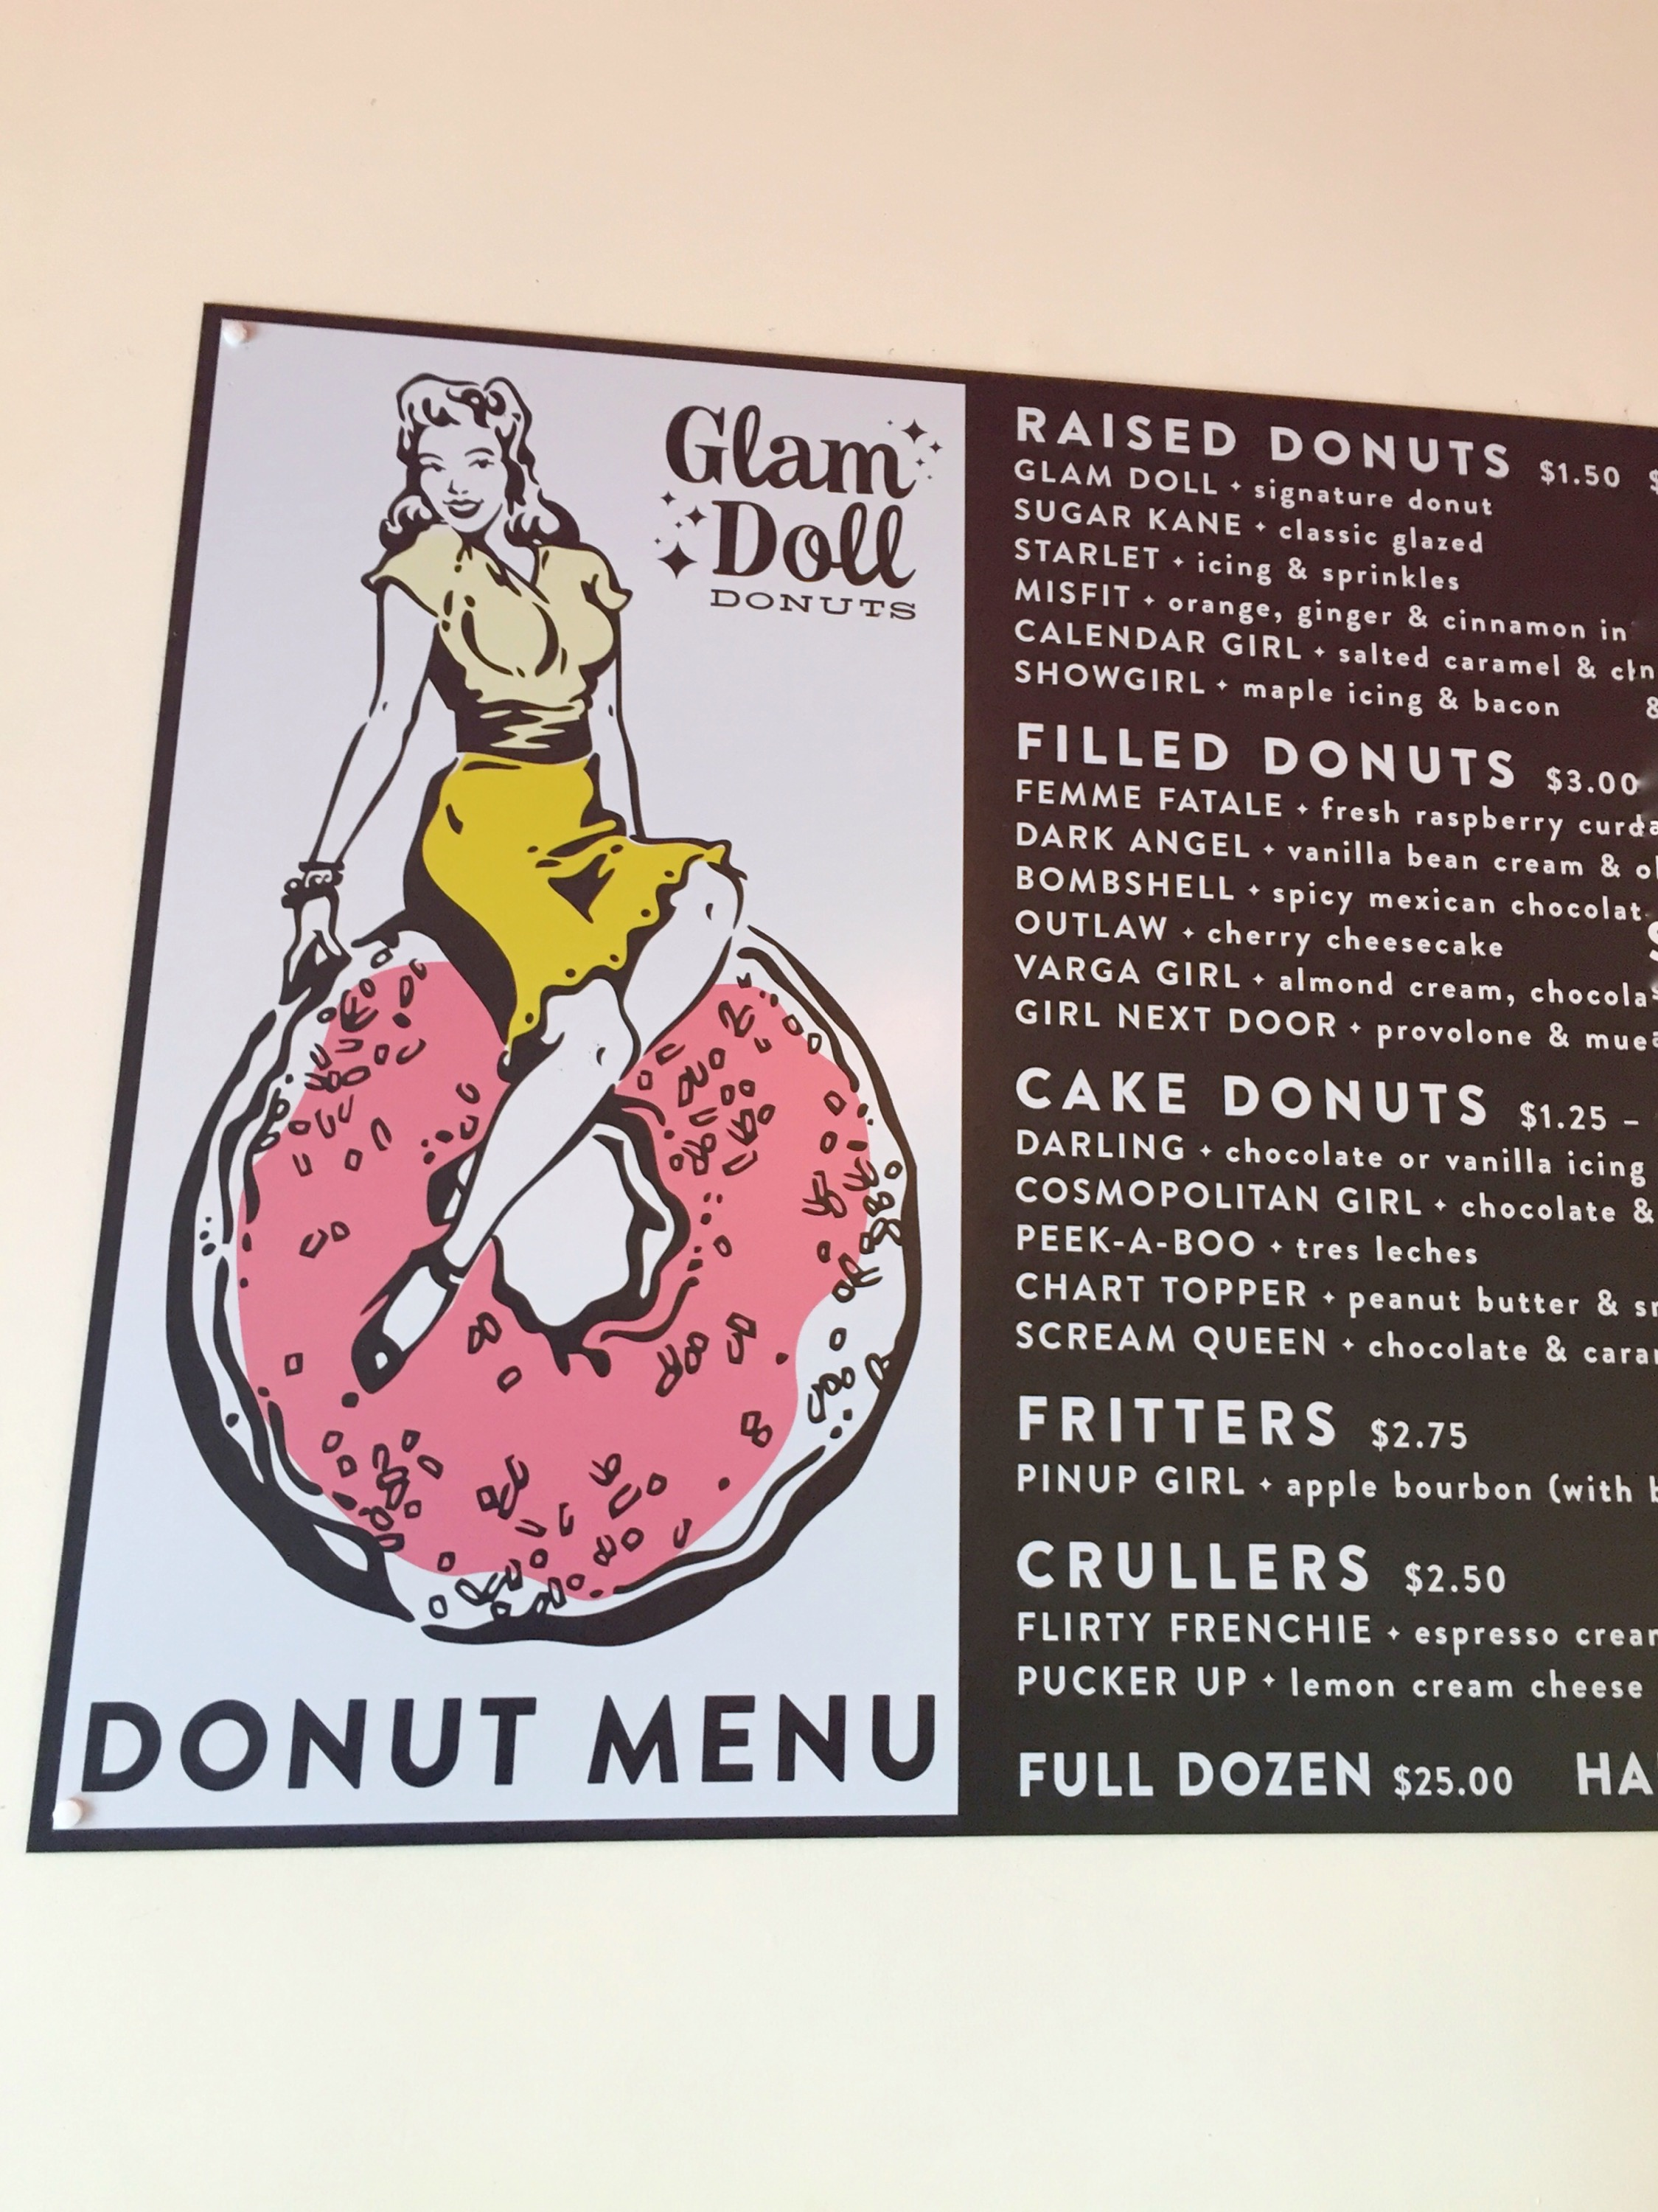 Glam Doll donut menu